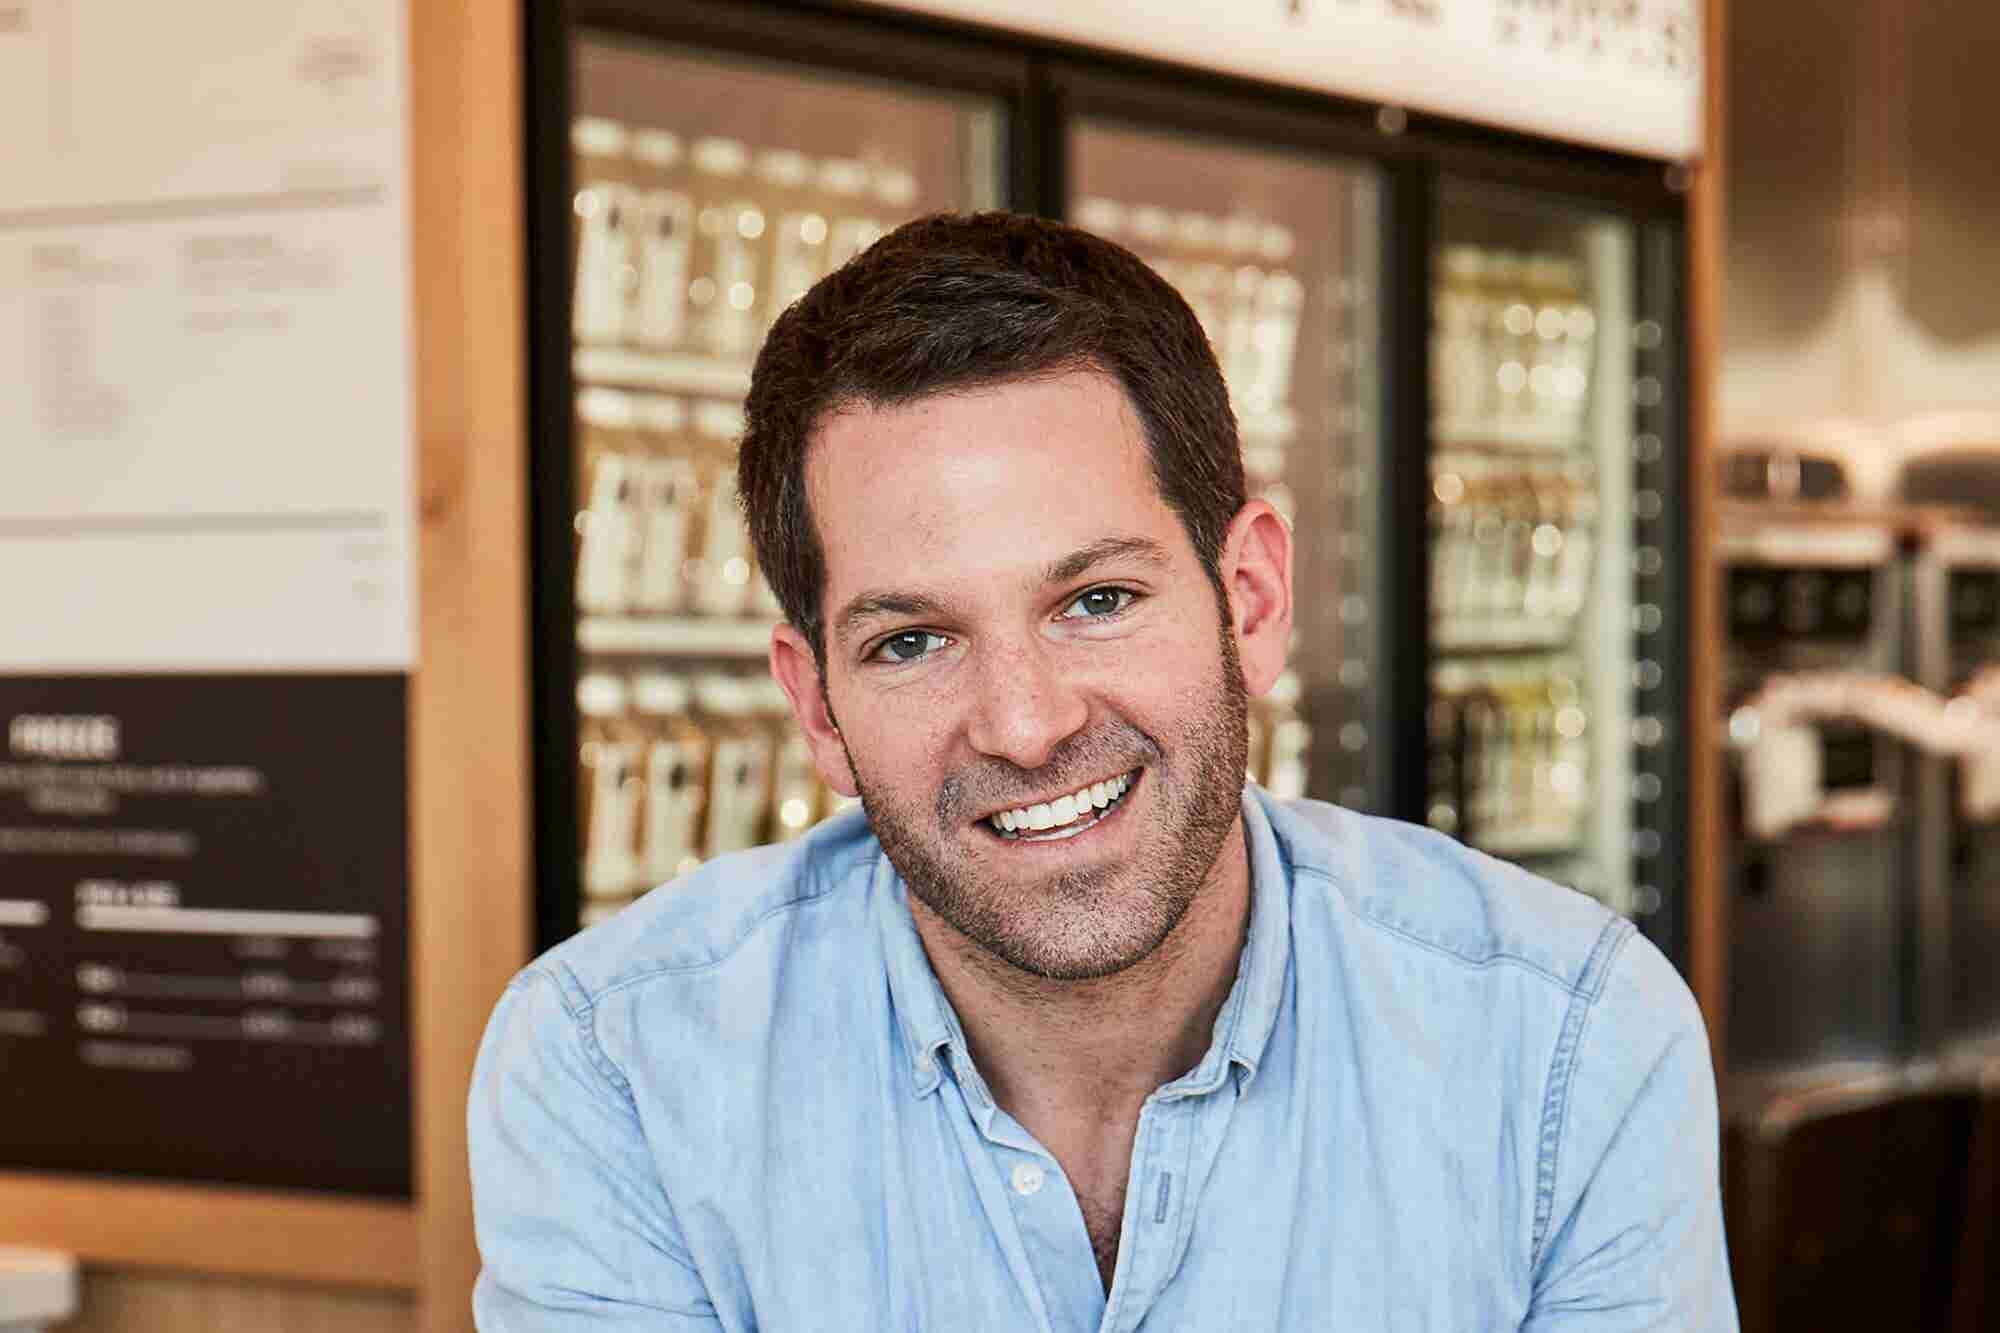 How the Founder of Pressed Juicery Turned $30,000 Into a Projected $75 Million Company